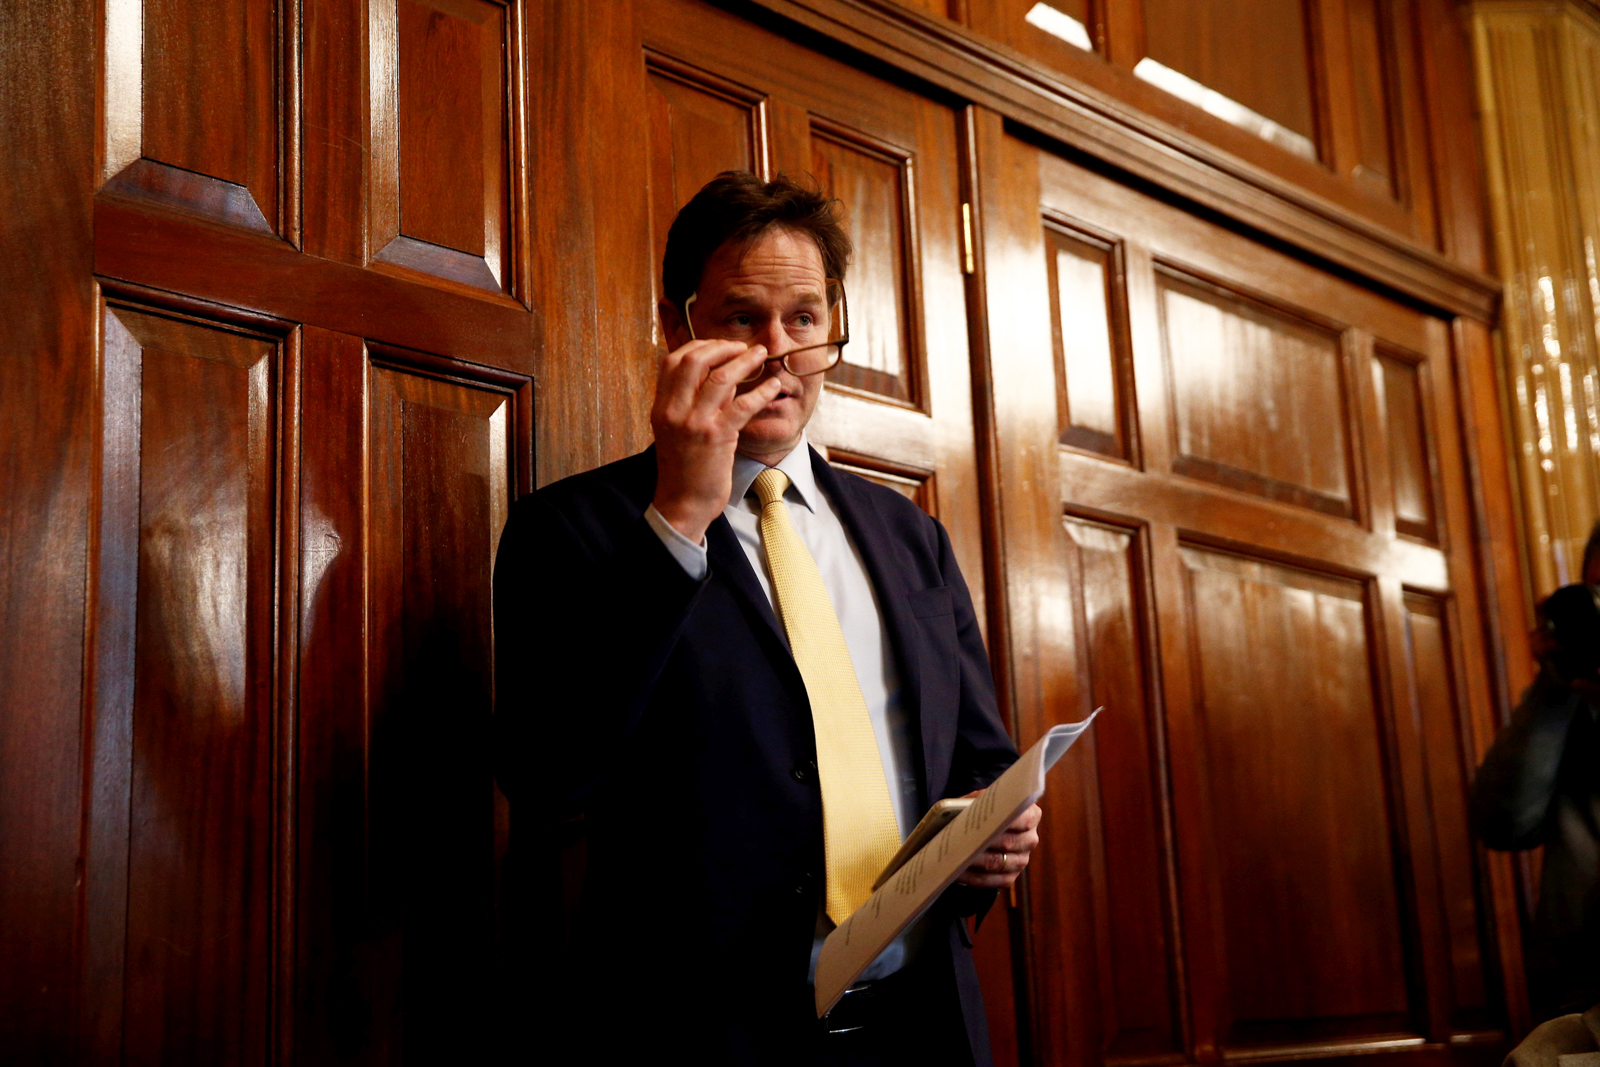 Nick Clegg before his campaign speech on the EU at the National Liberal Club, London.